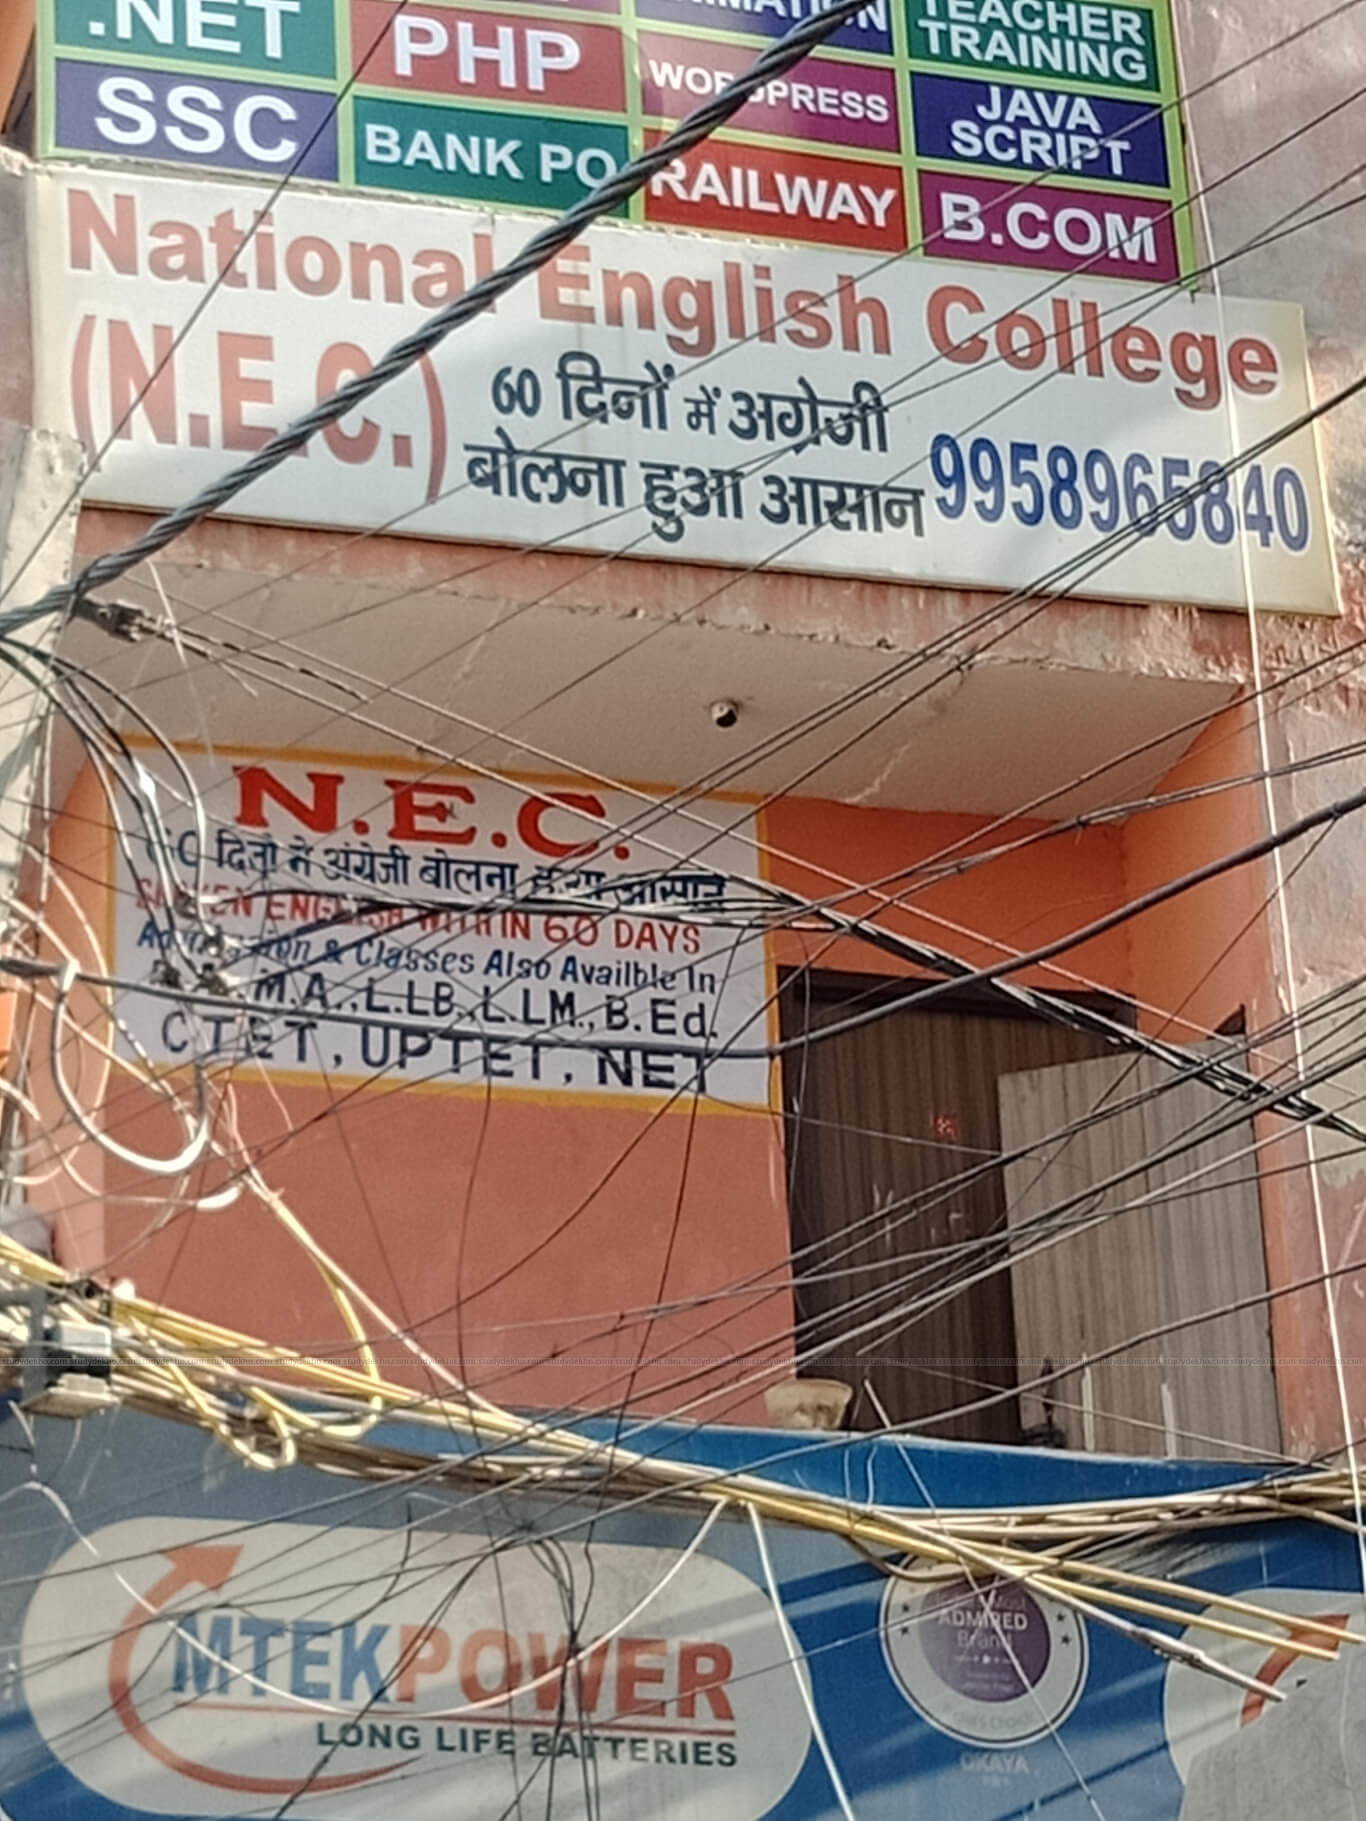 NATIONAL ENGLISH COLLEGE Logo